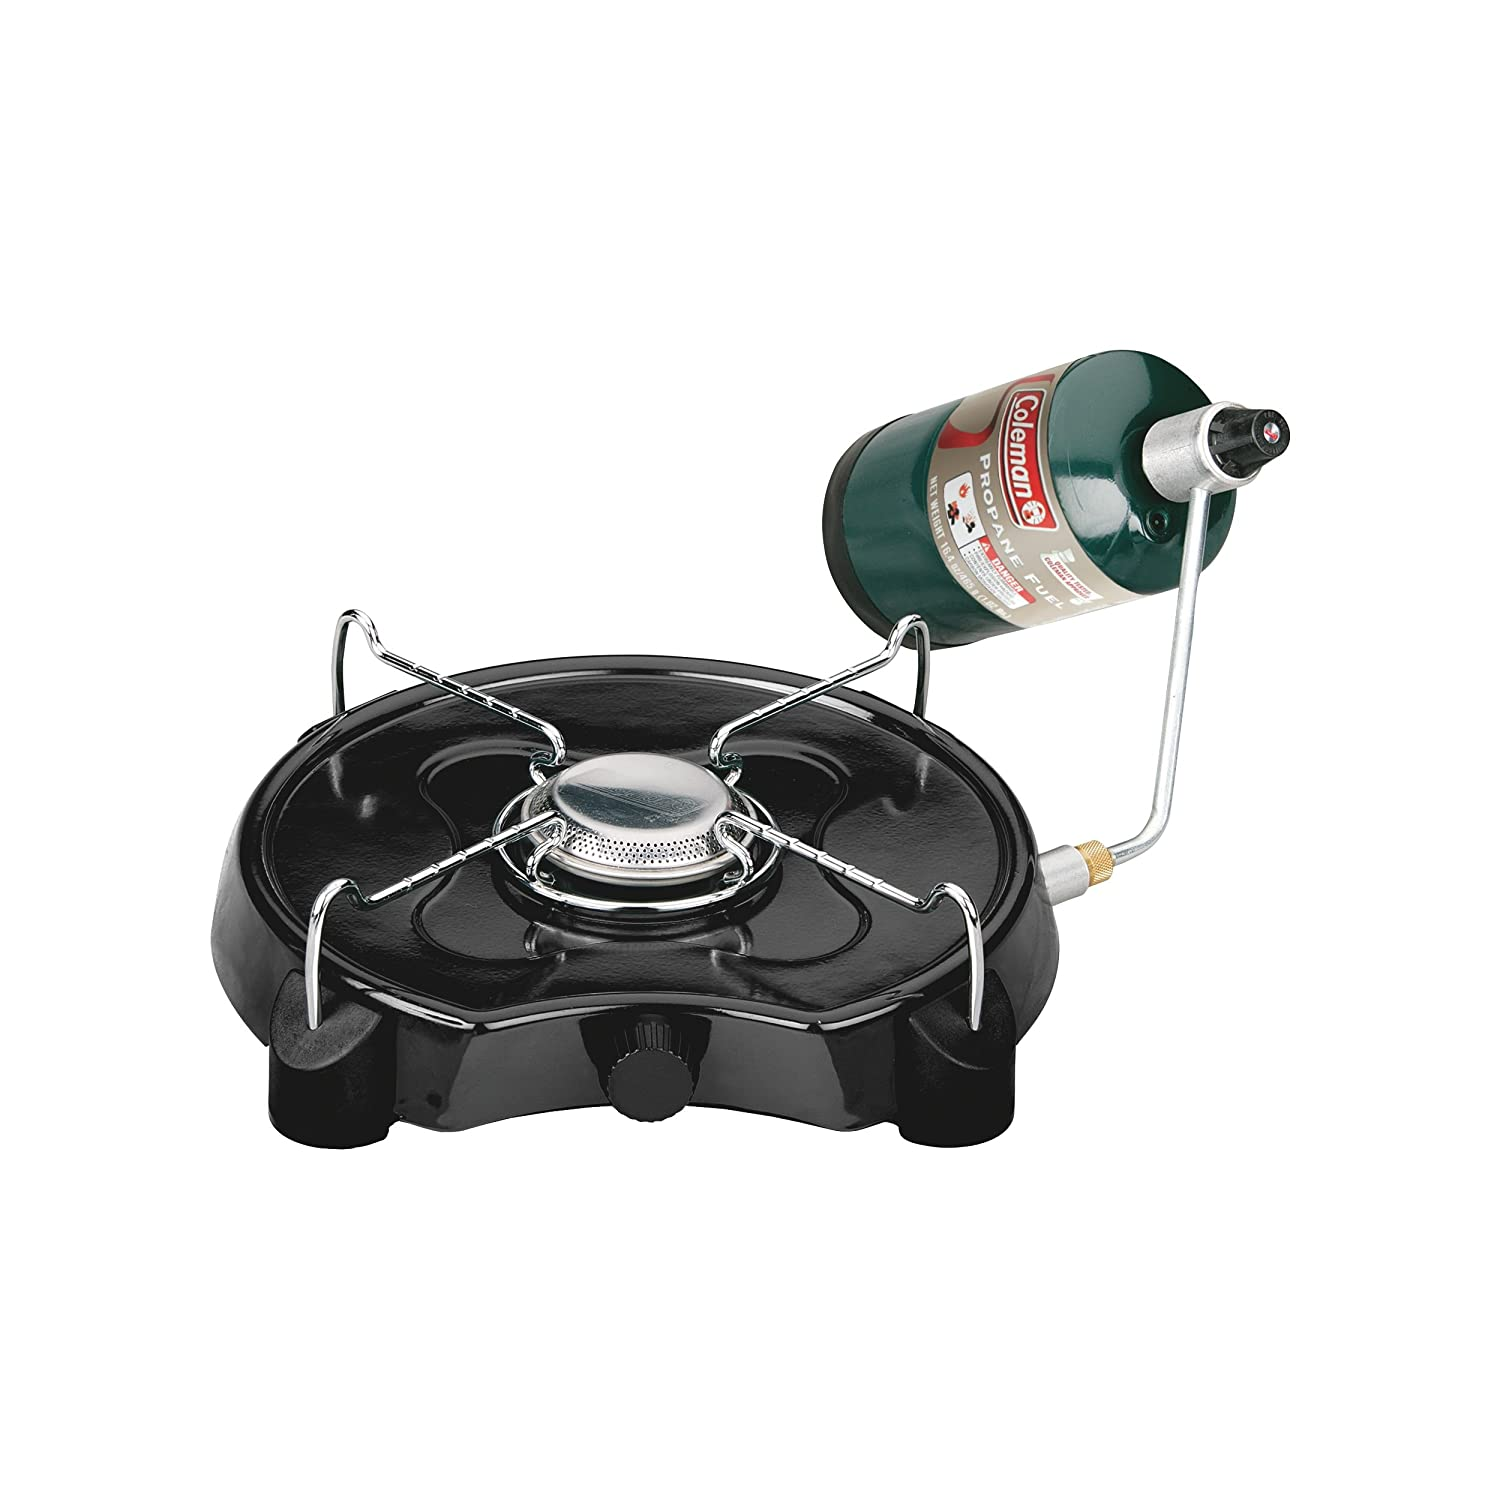 """Coleman Powerpack Propane Stove,Coleman Green,4"""" H x 13.38"""" W x 12.5"""" L"""